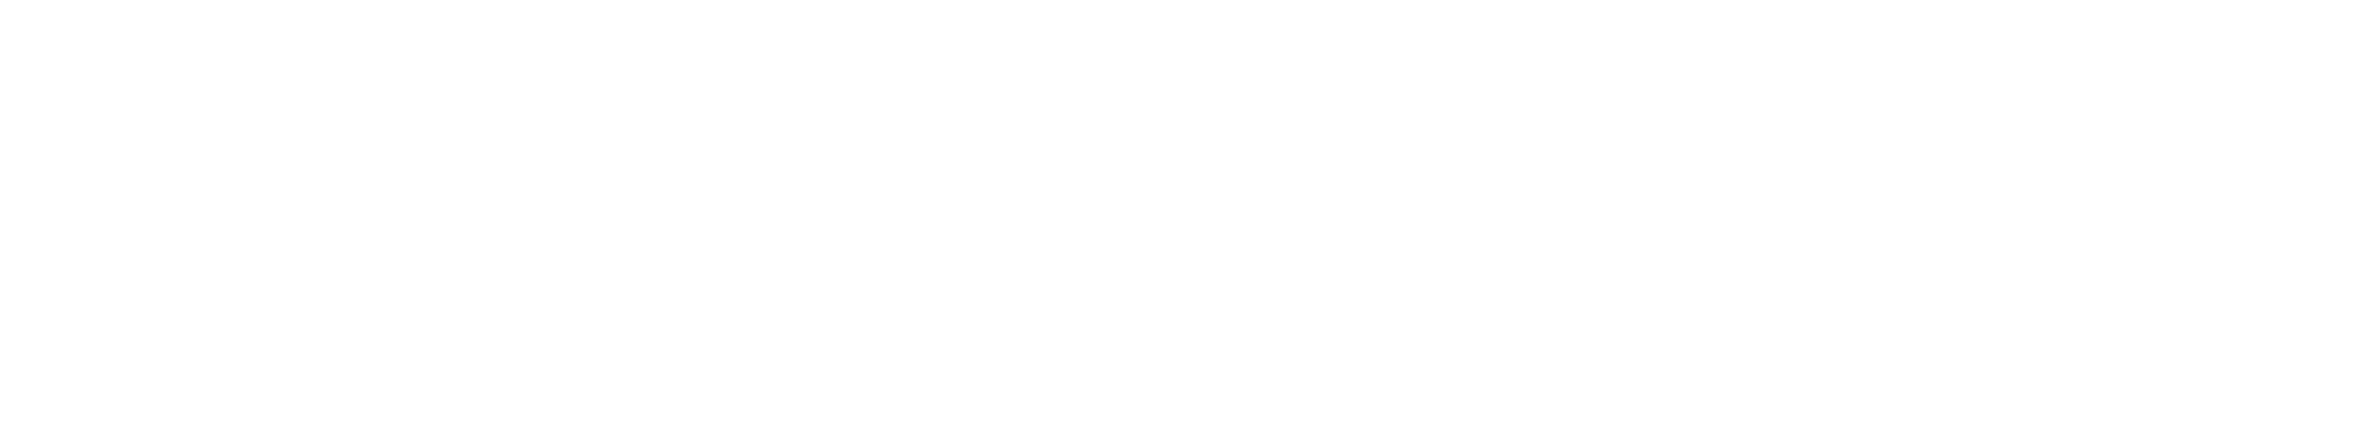 TRACK me TRACE me